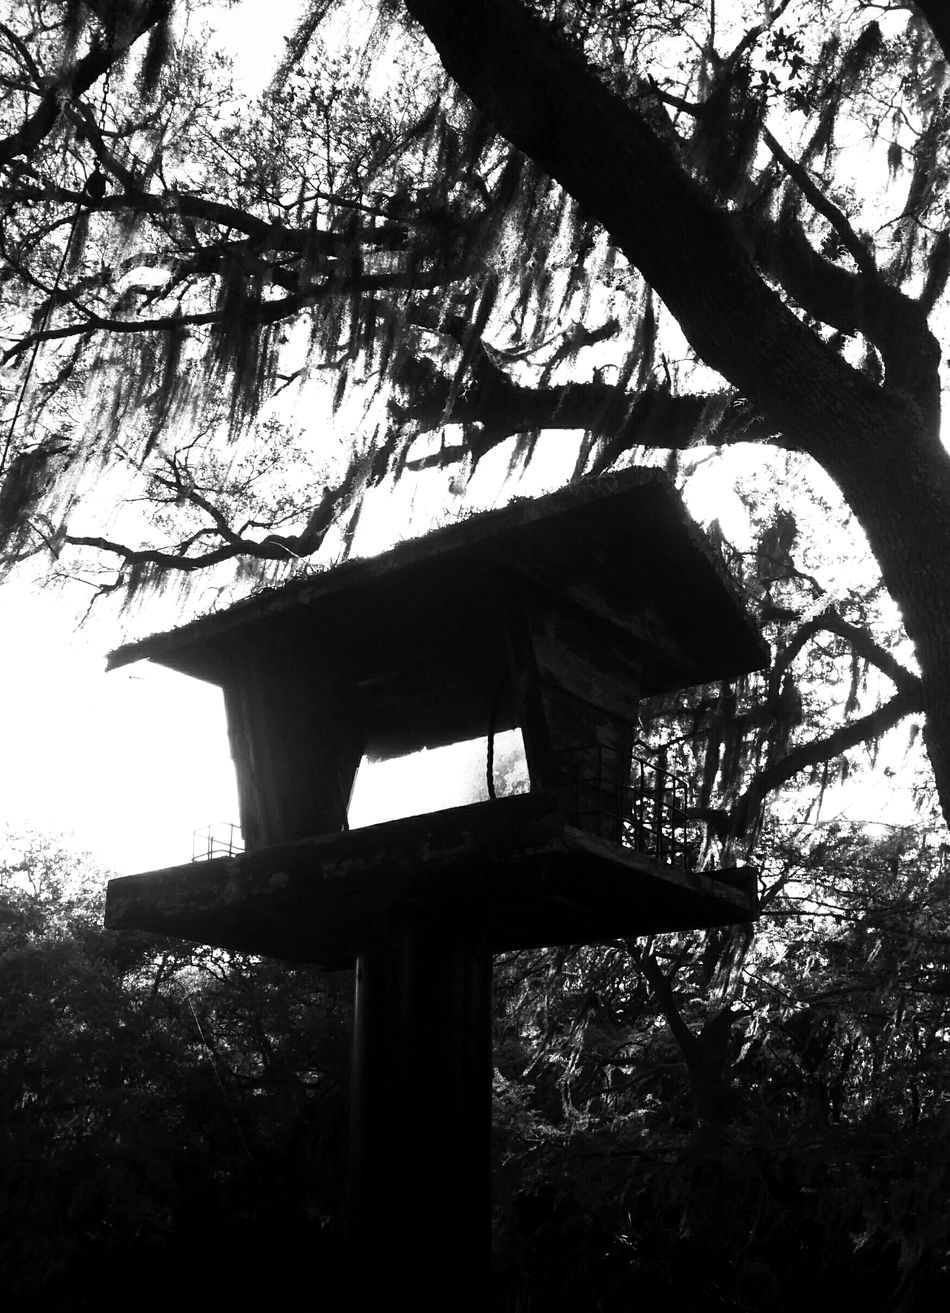 Birdhouse Old Bird House Creepy Atmoshpere Moss Mossy Tree Black And White Photography Playing With The Shadows